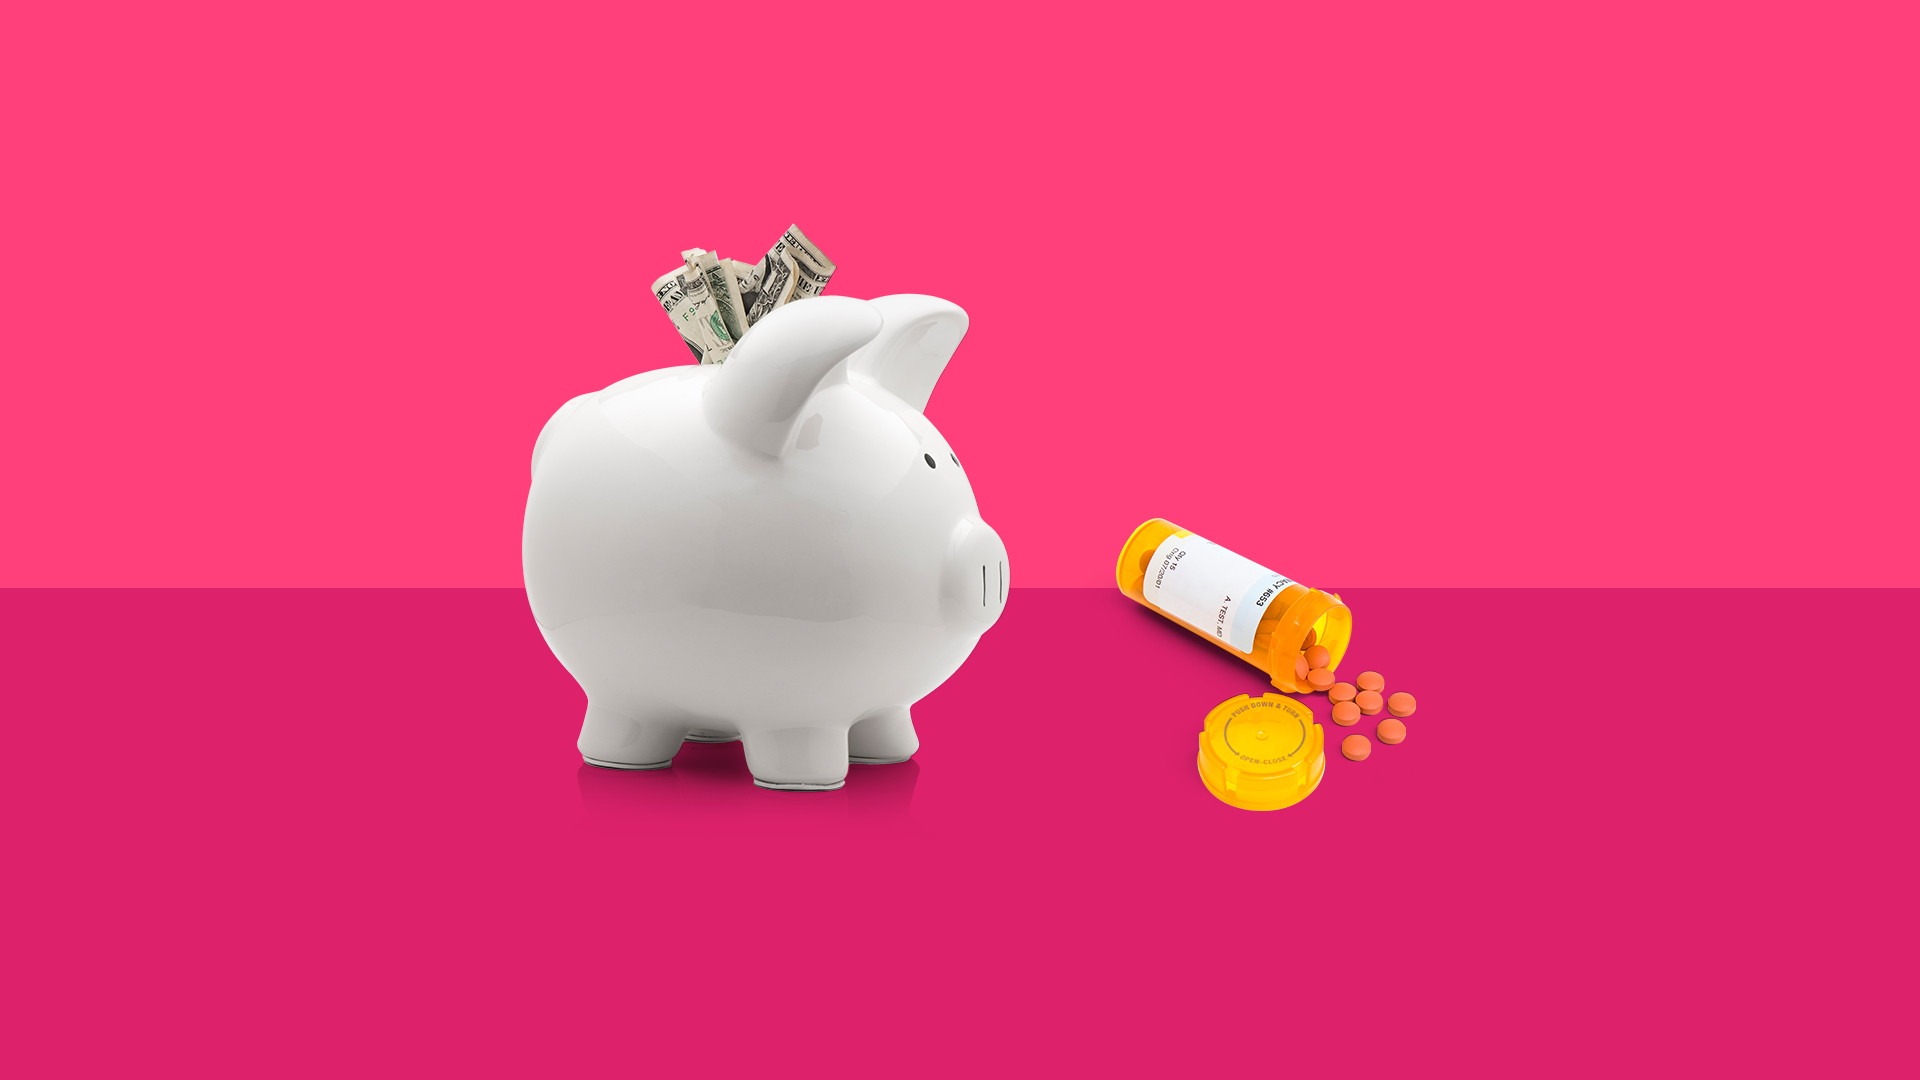 Report: The Consumer Impact of 2021 Drug Price Increases